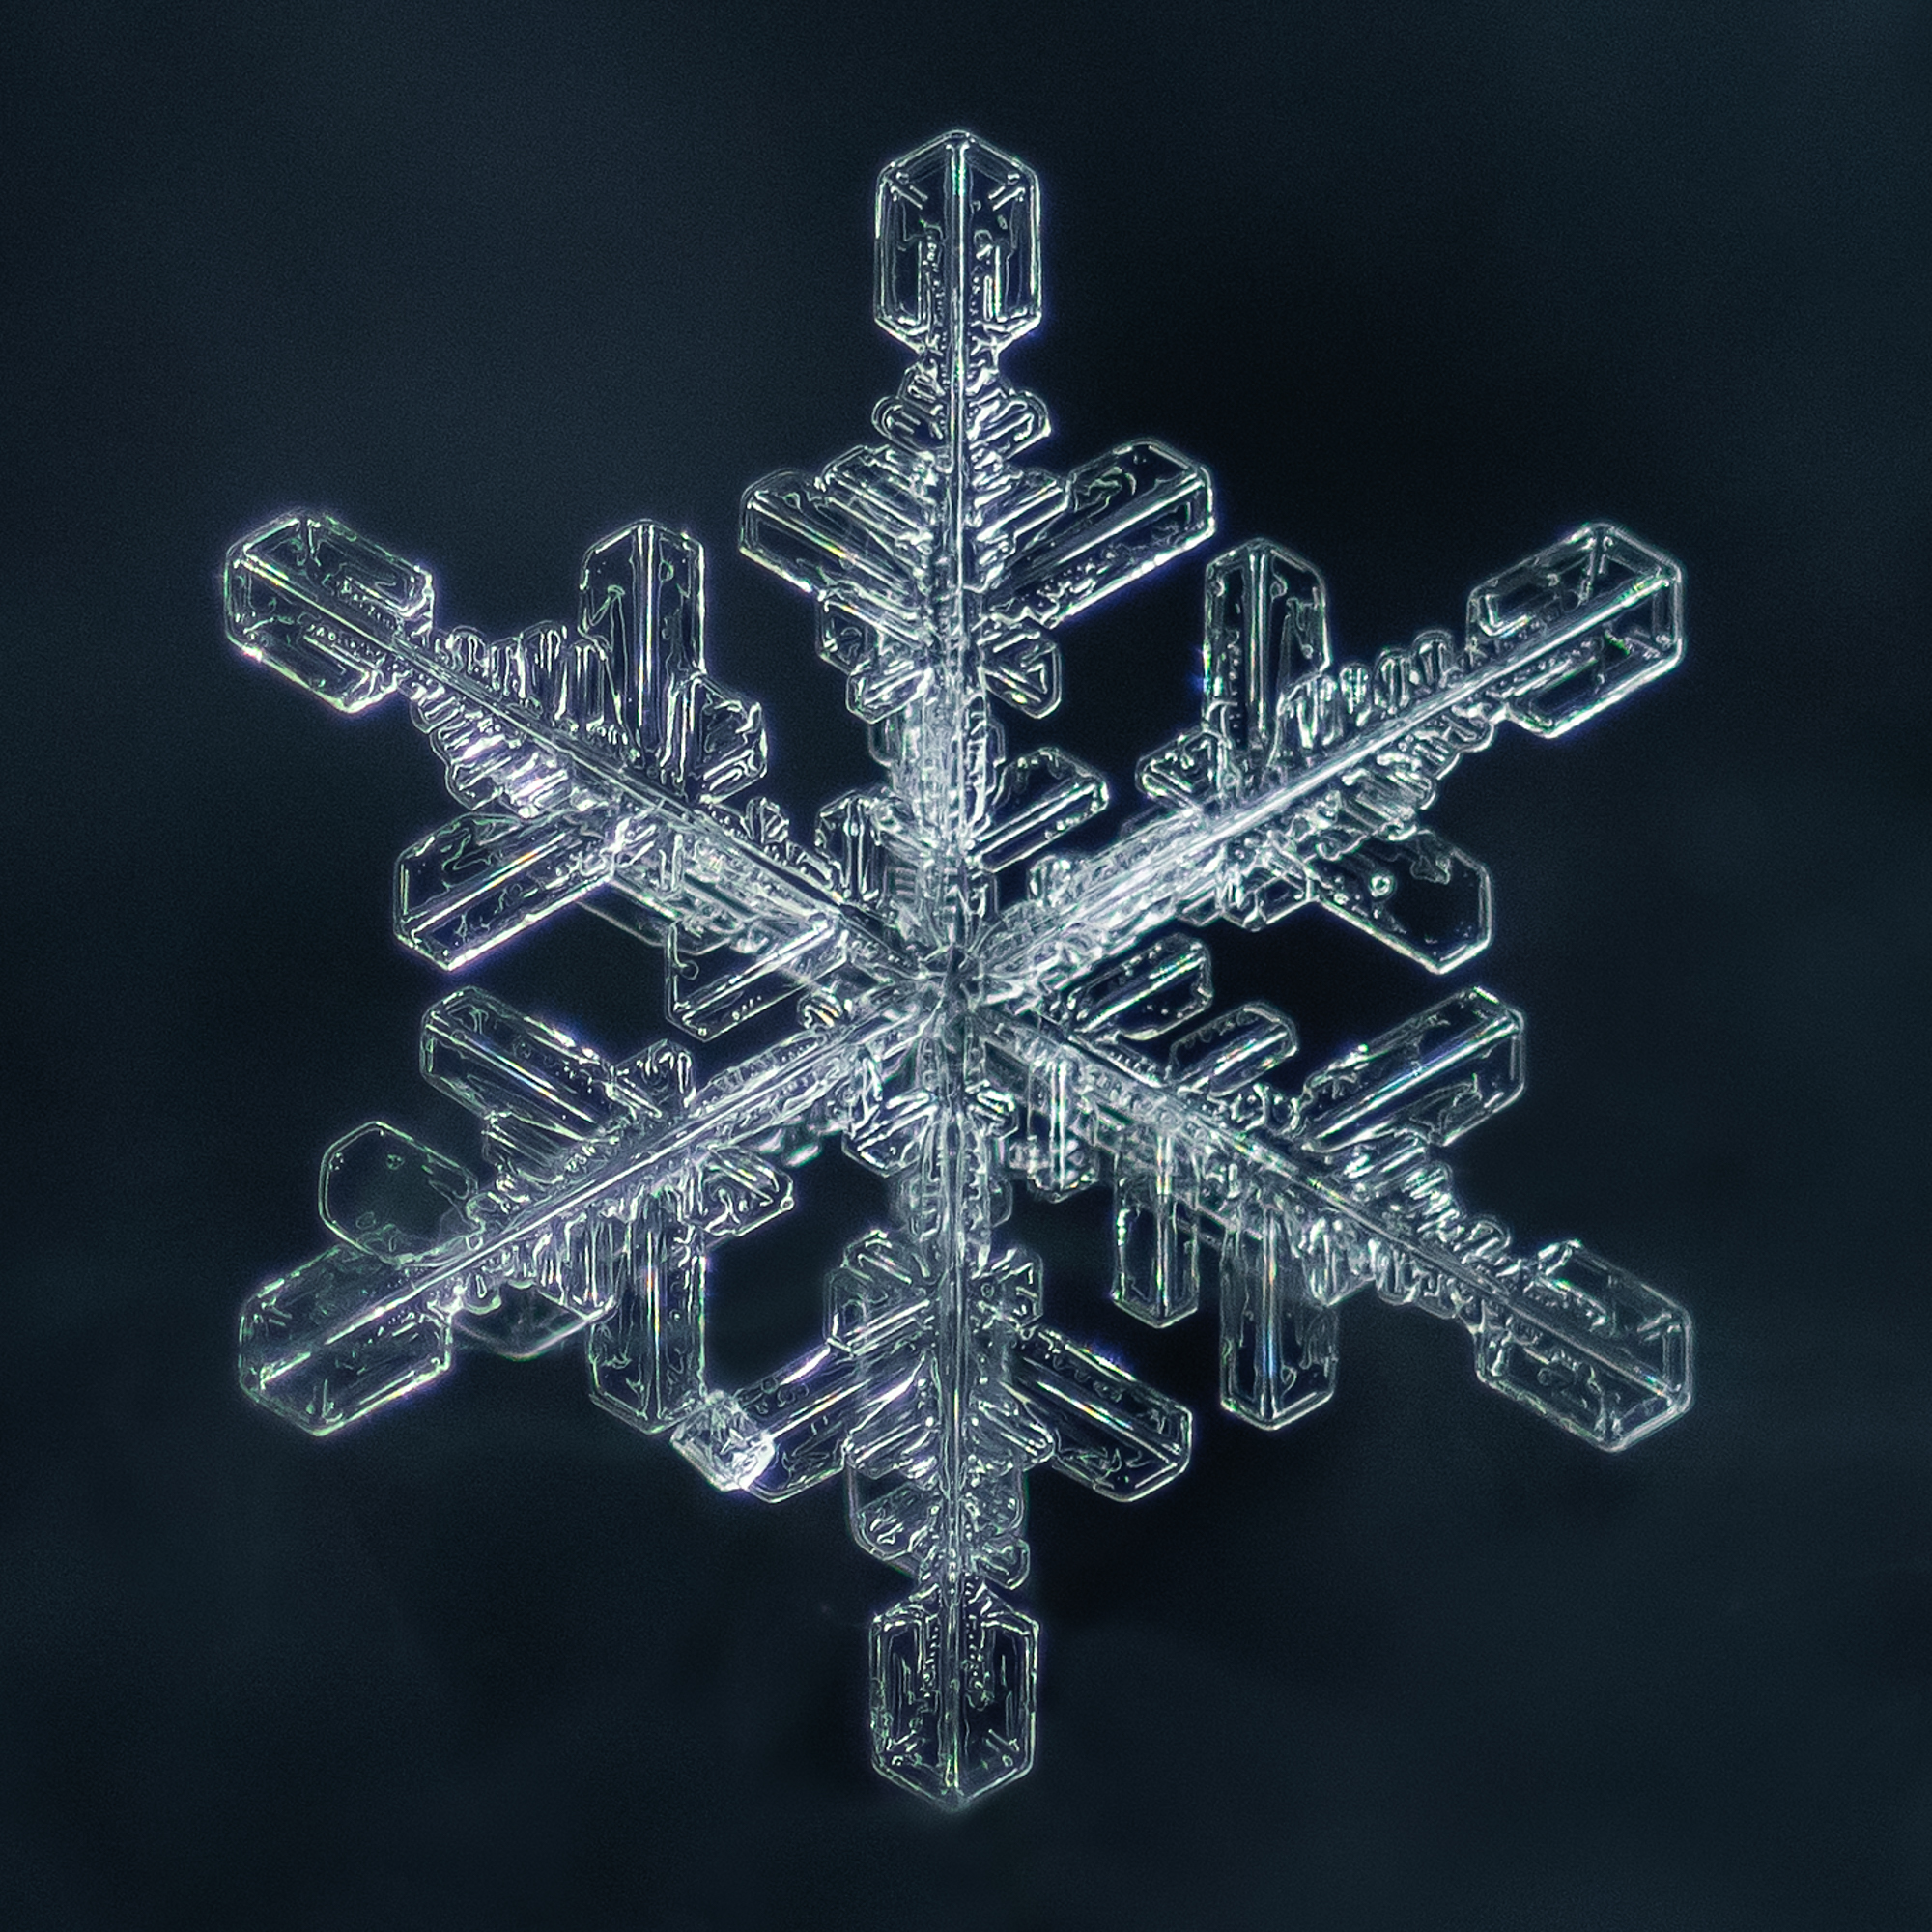 snowflake photography sample-3.jpg